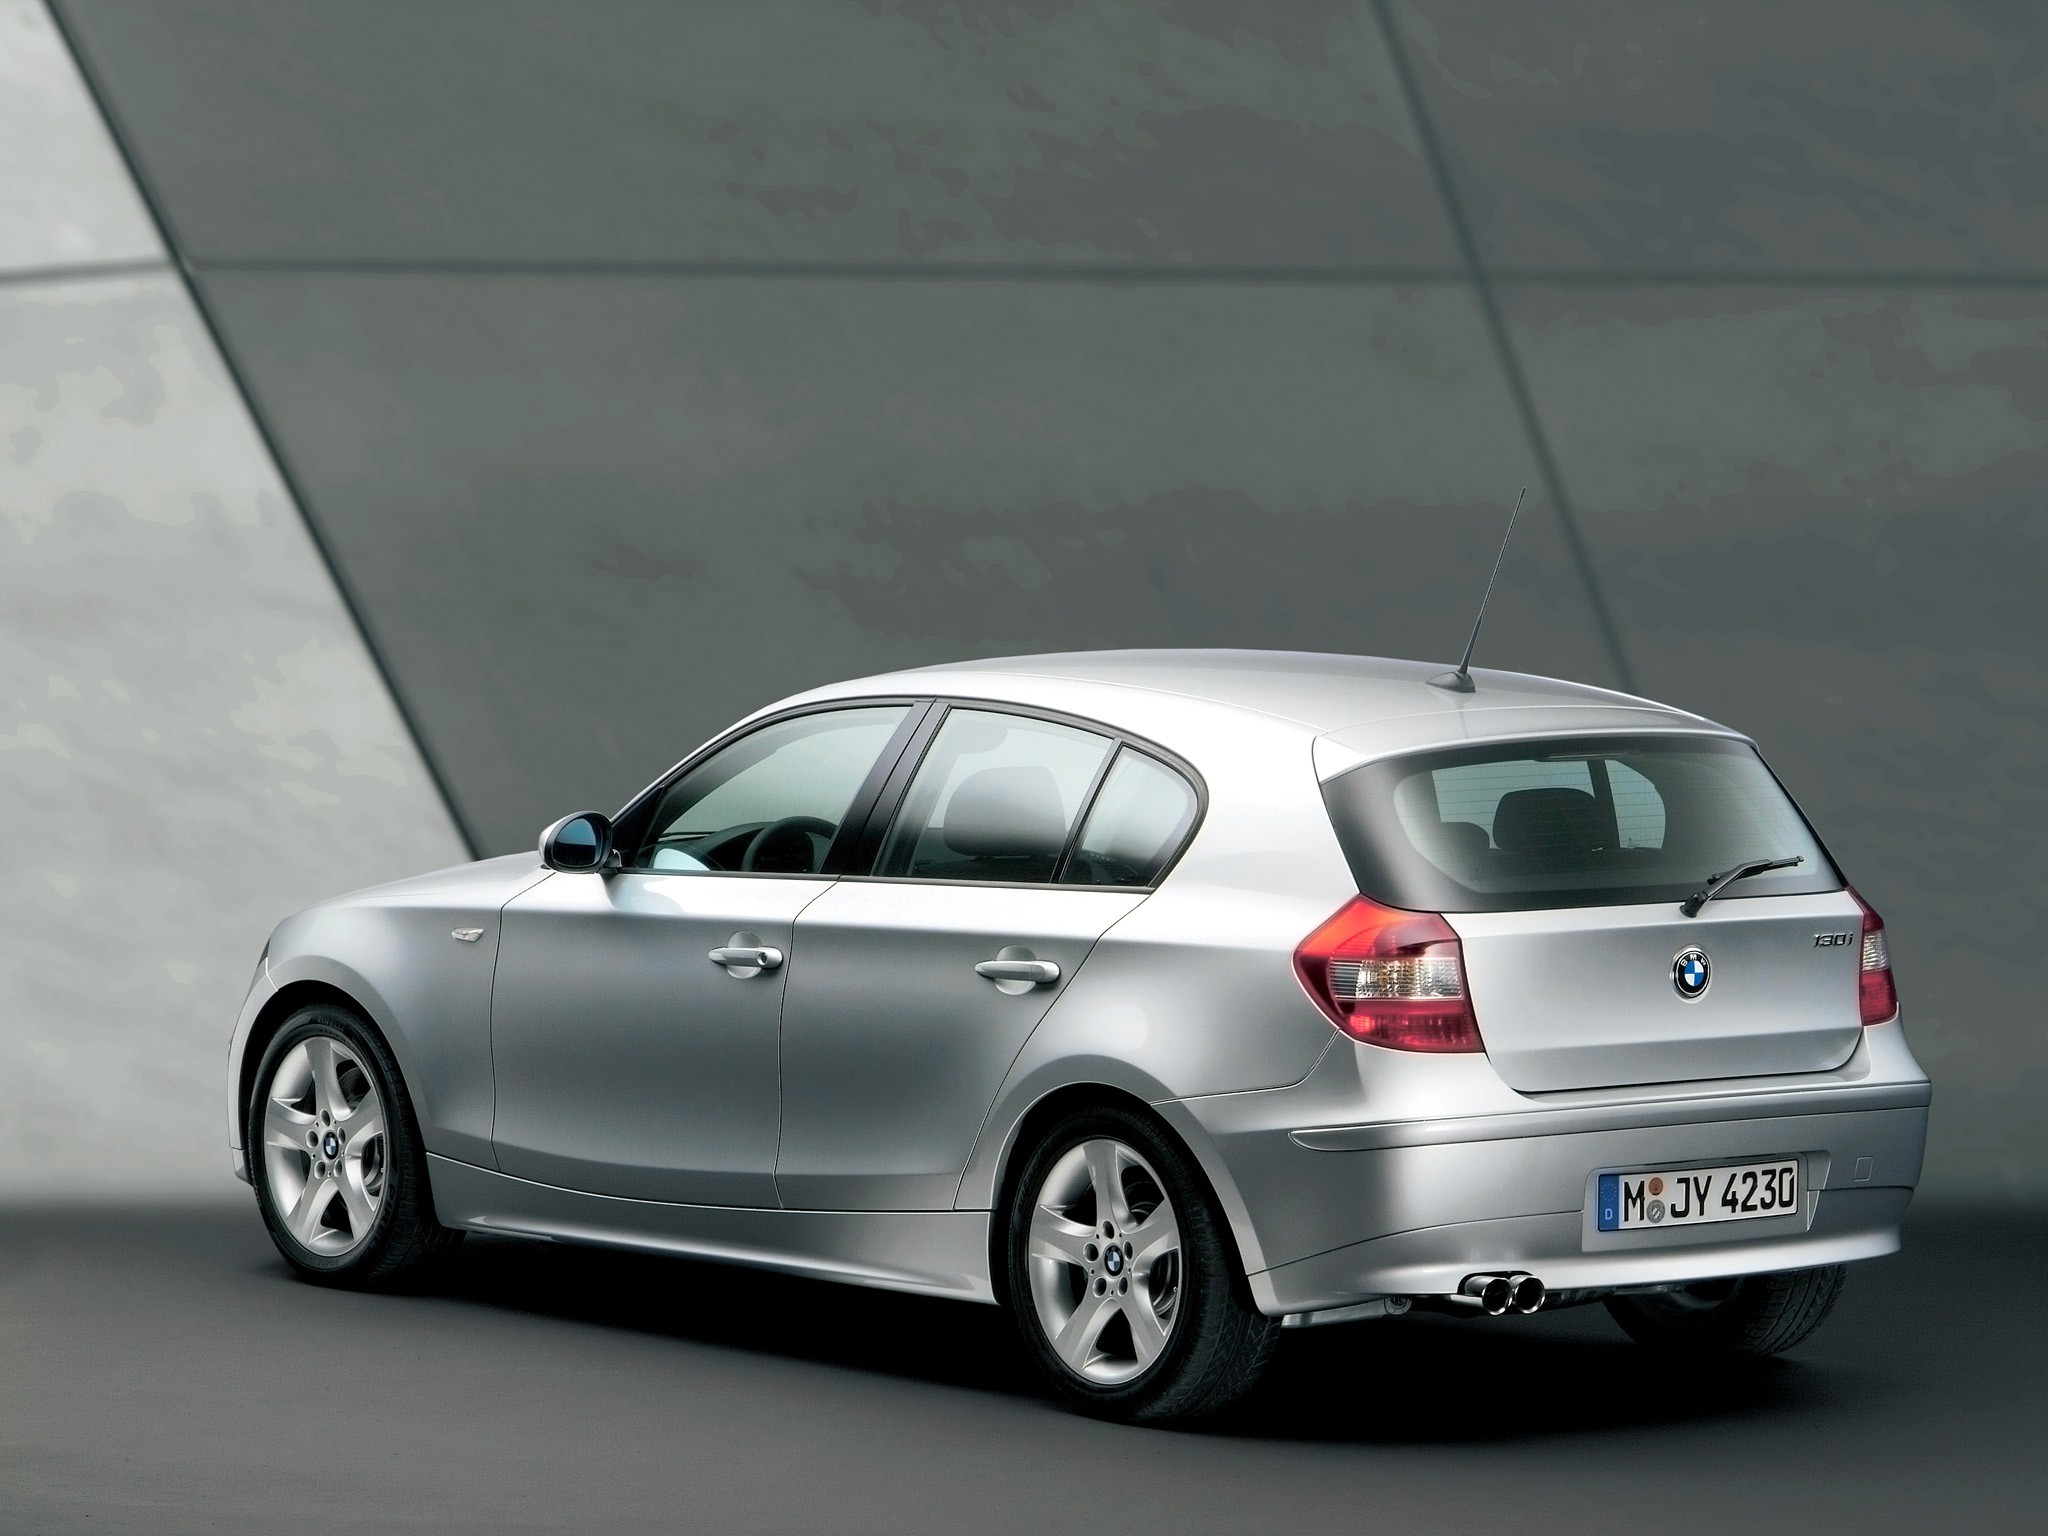 BMW 1 Series I (E81/E82/E87/E88) 2004 - 2007 Hatchback 5 door #7